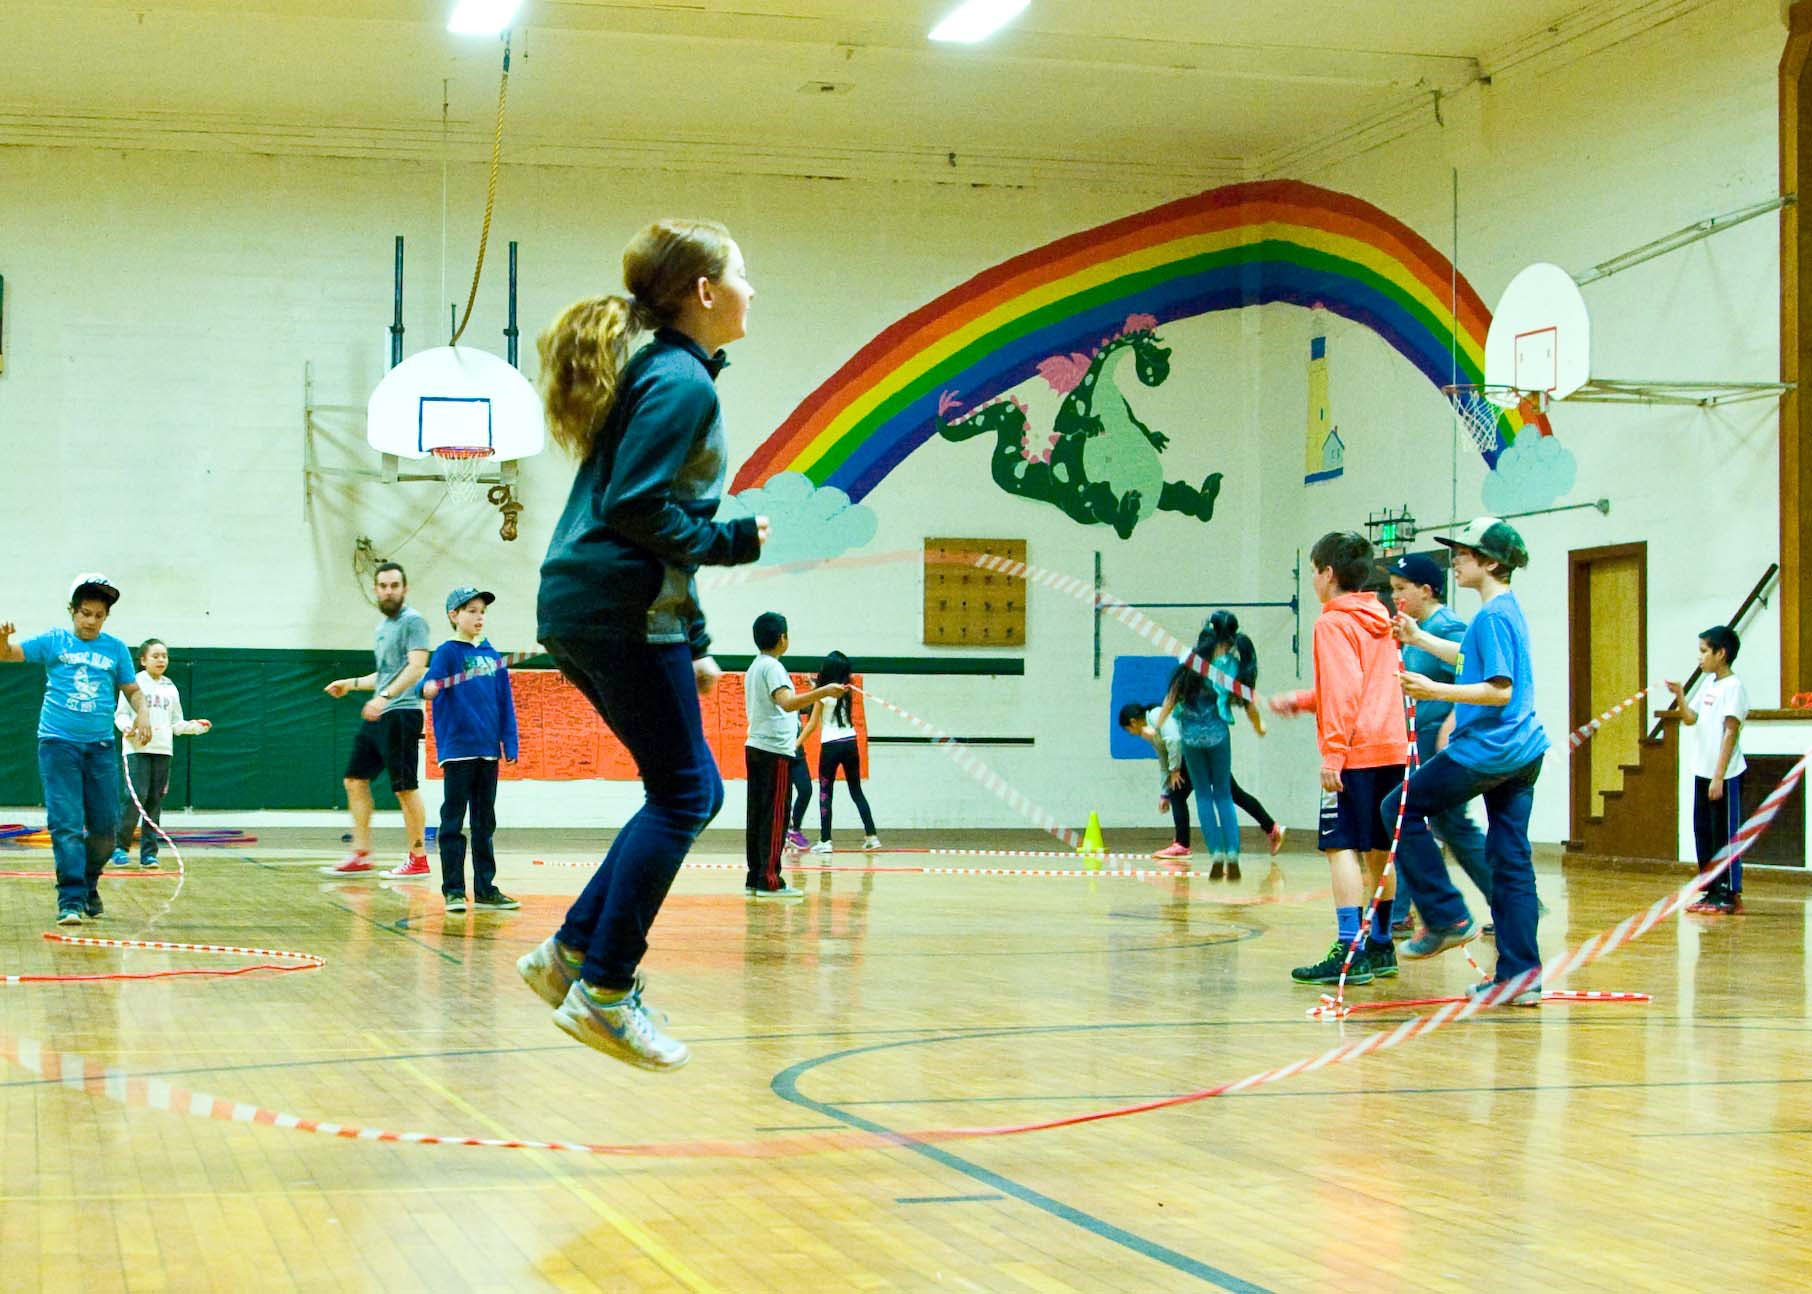 Parkdale students jump rope in a gym. A rainbow and dragon are painted on the wall above the basketball hoops.